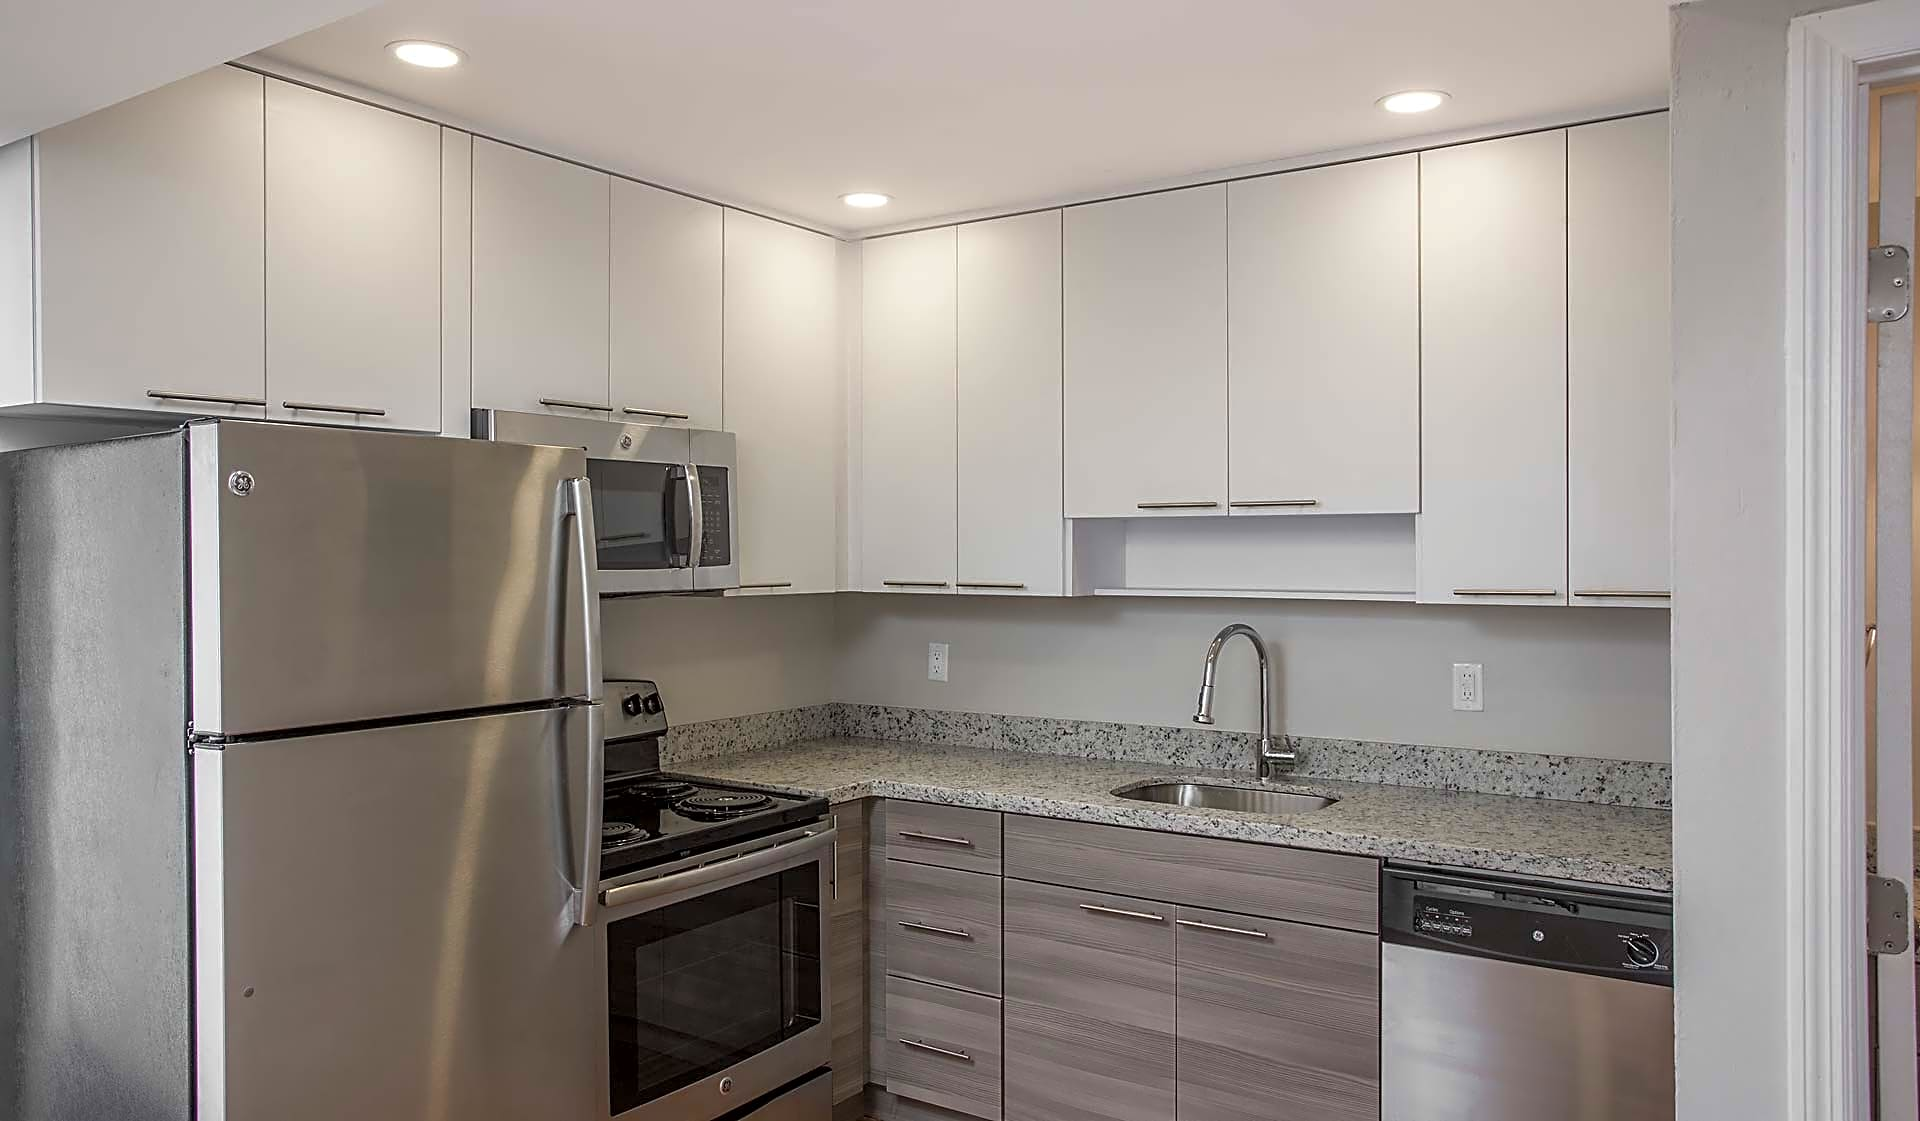 Modern kitchen features stainless steel appliances, granite countertops and designer cabinets